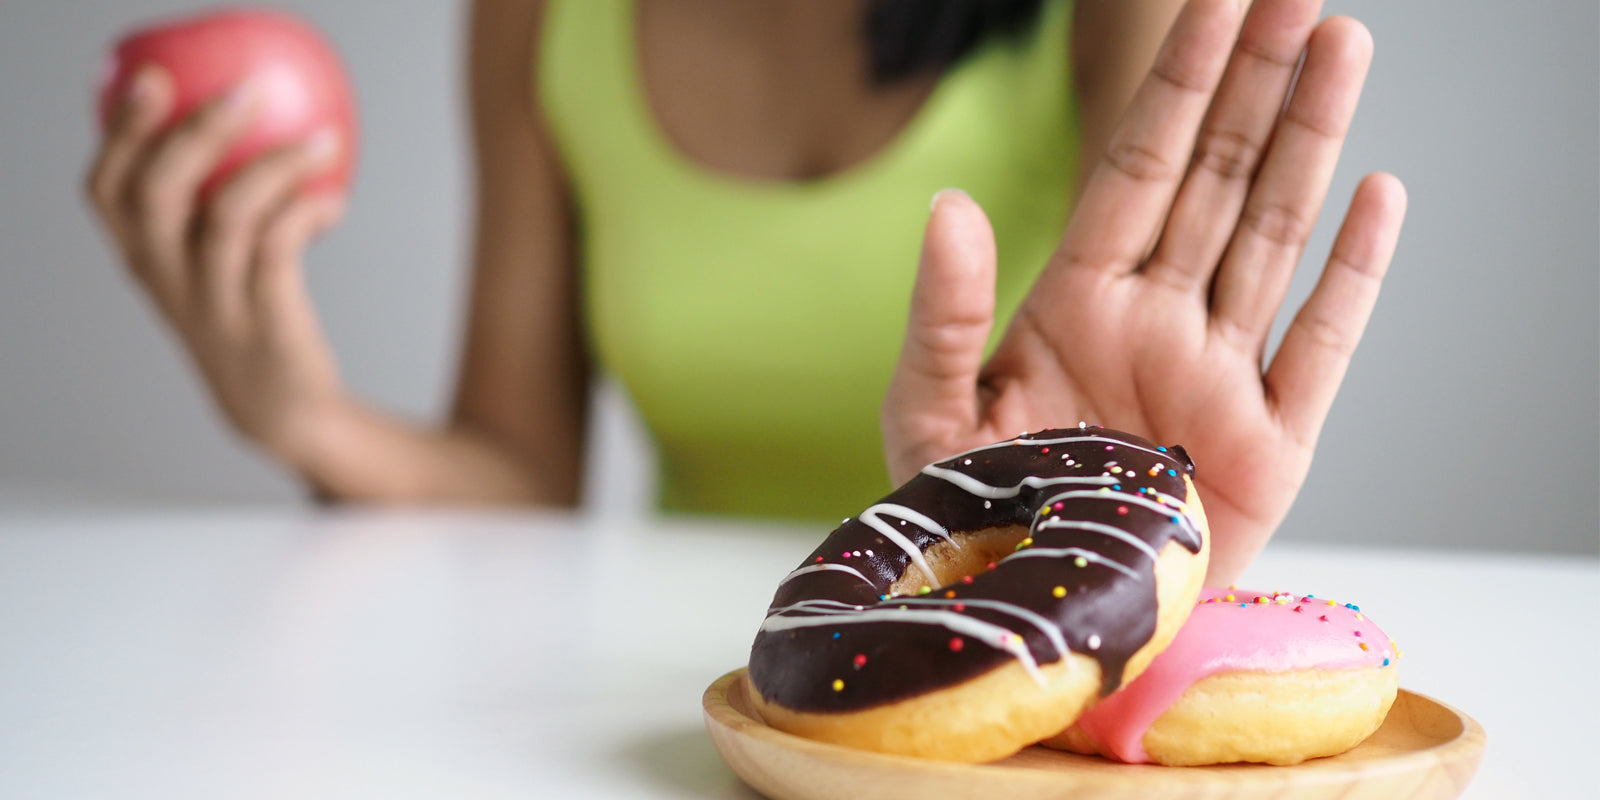 Food to be avoided in a Diabetes Diet